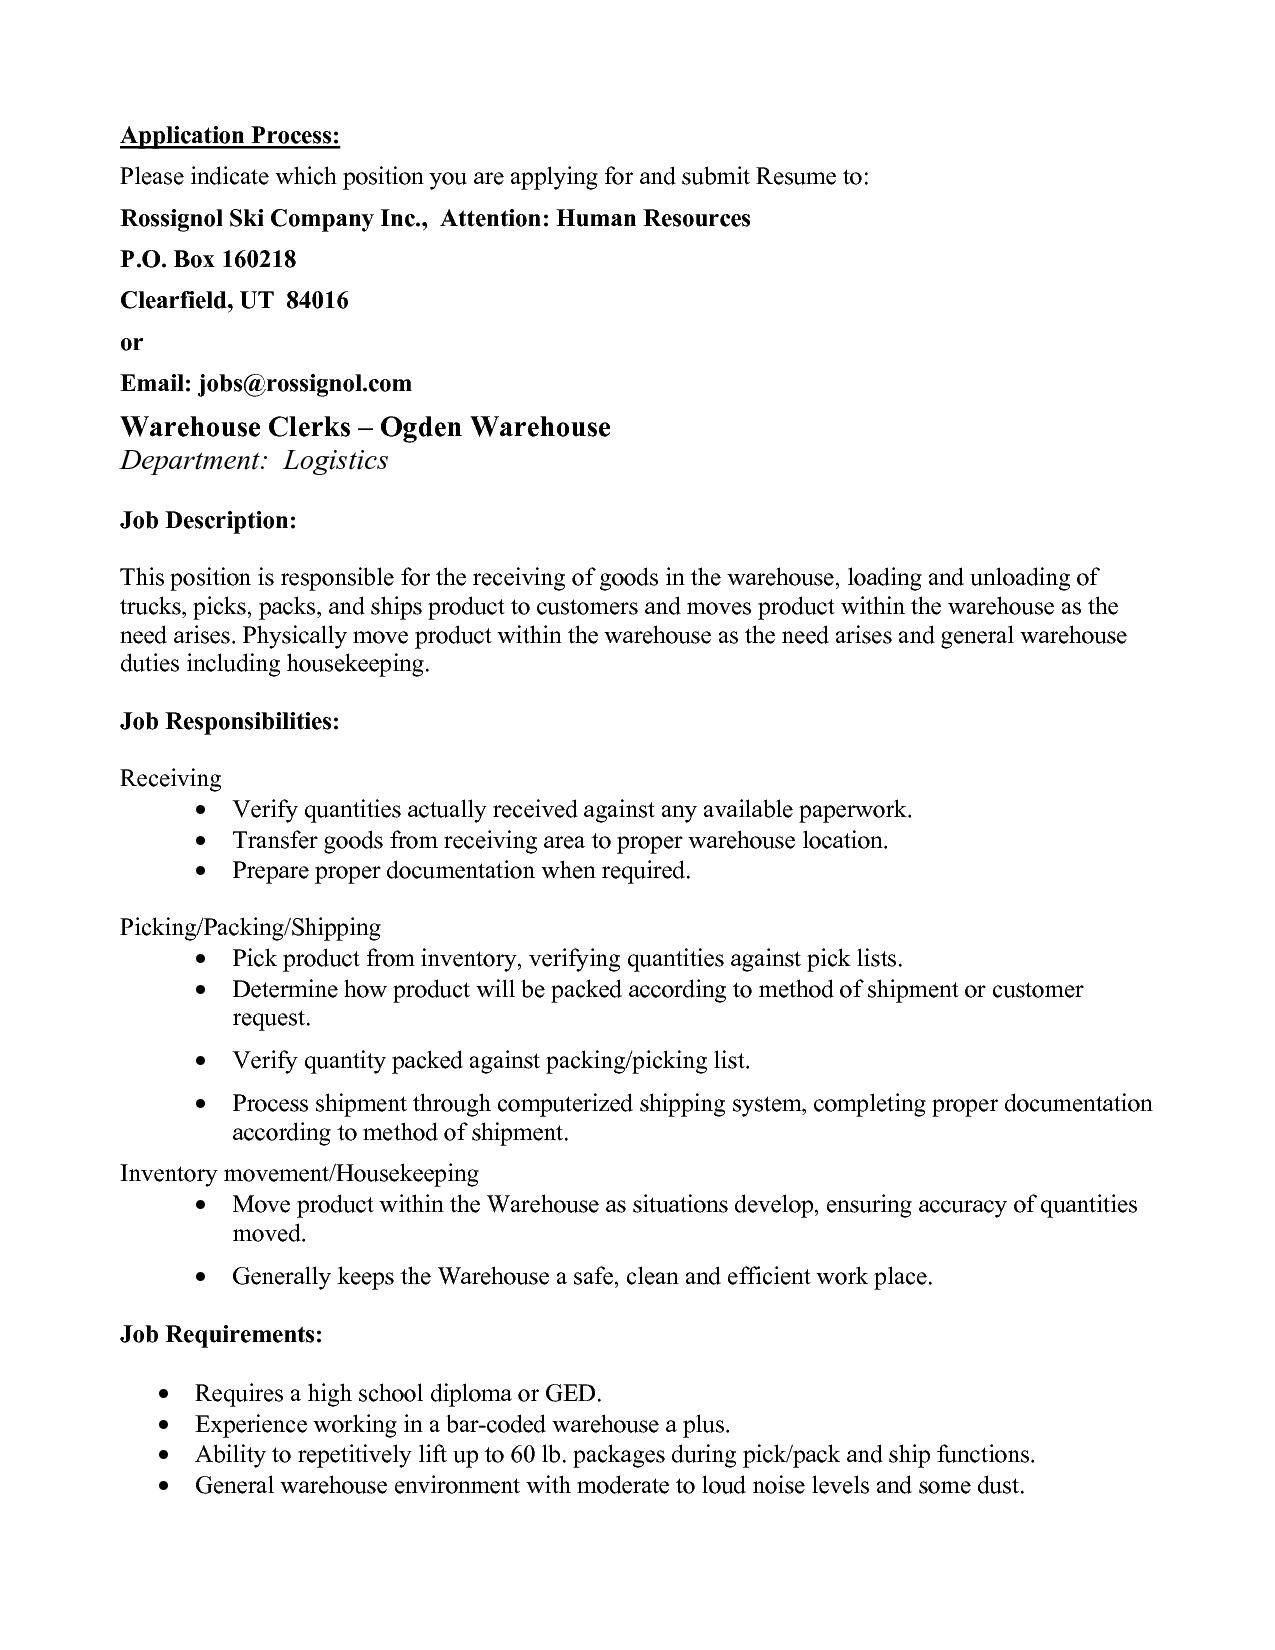 Picker Packer Resume | Warehouse Order Picker Resume - PDF | resume ...